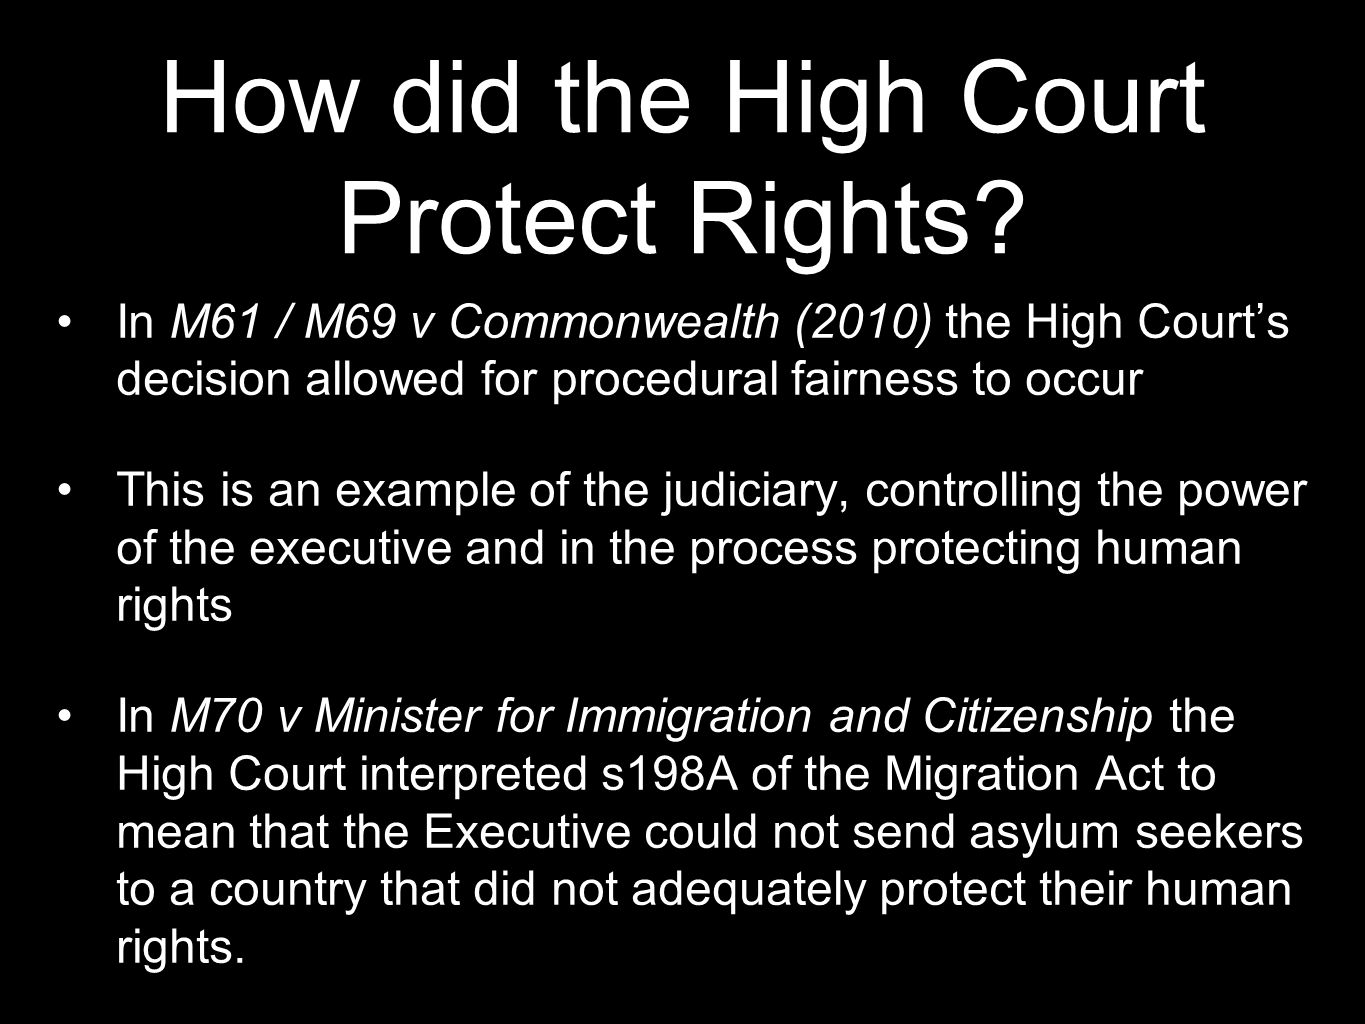 How did the High Court Protect Rights